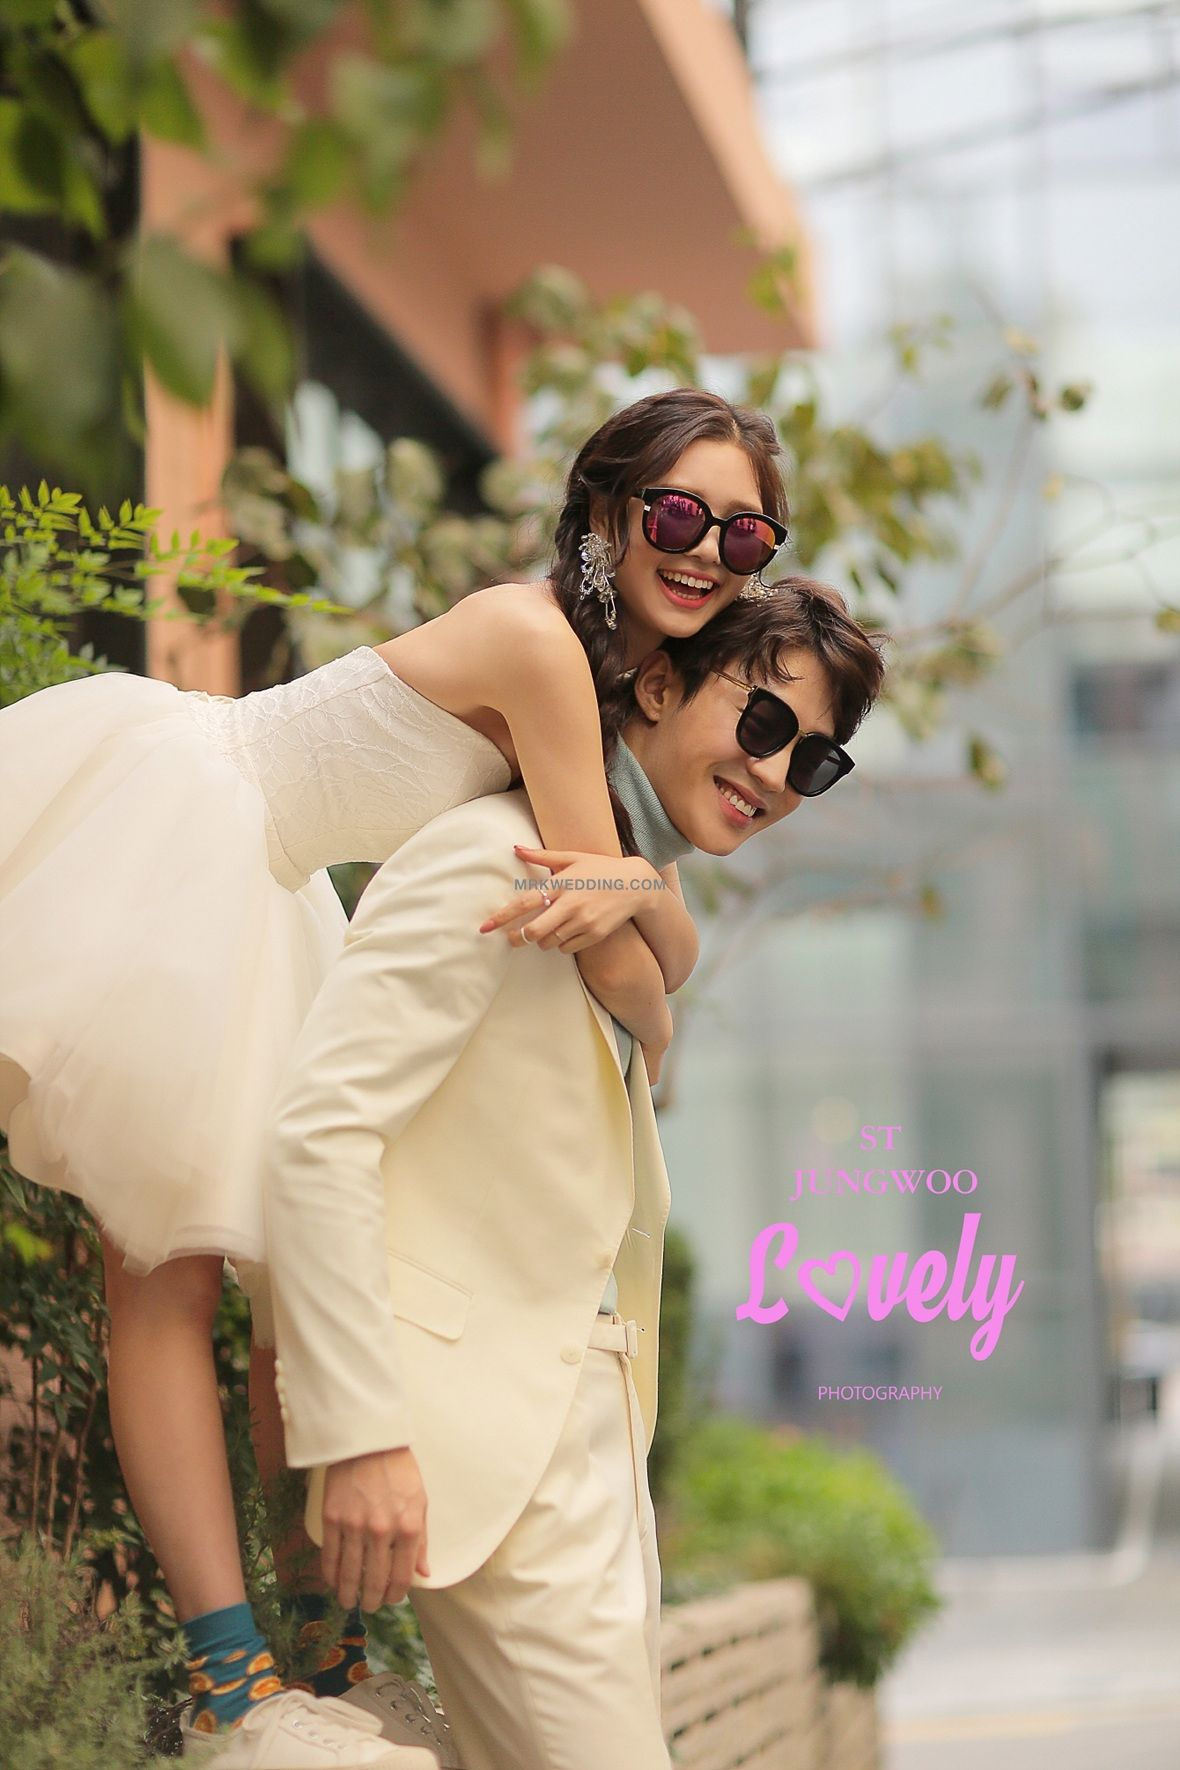 Korea Pre Wedding Lovely St 2019 2020 Wedding Package Mr K Korea Pre Wedding Everyday Somethin Wedding Photoshoot Pre Wedding Photoshoot Wedding Beauty